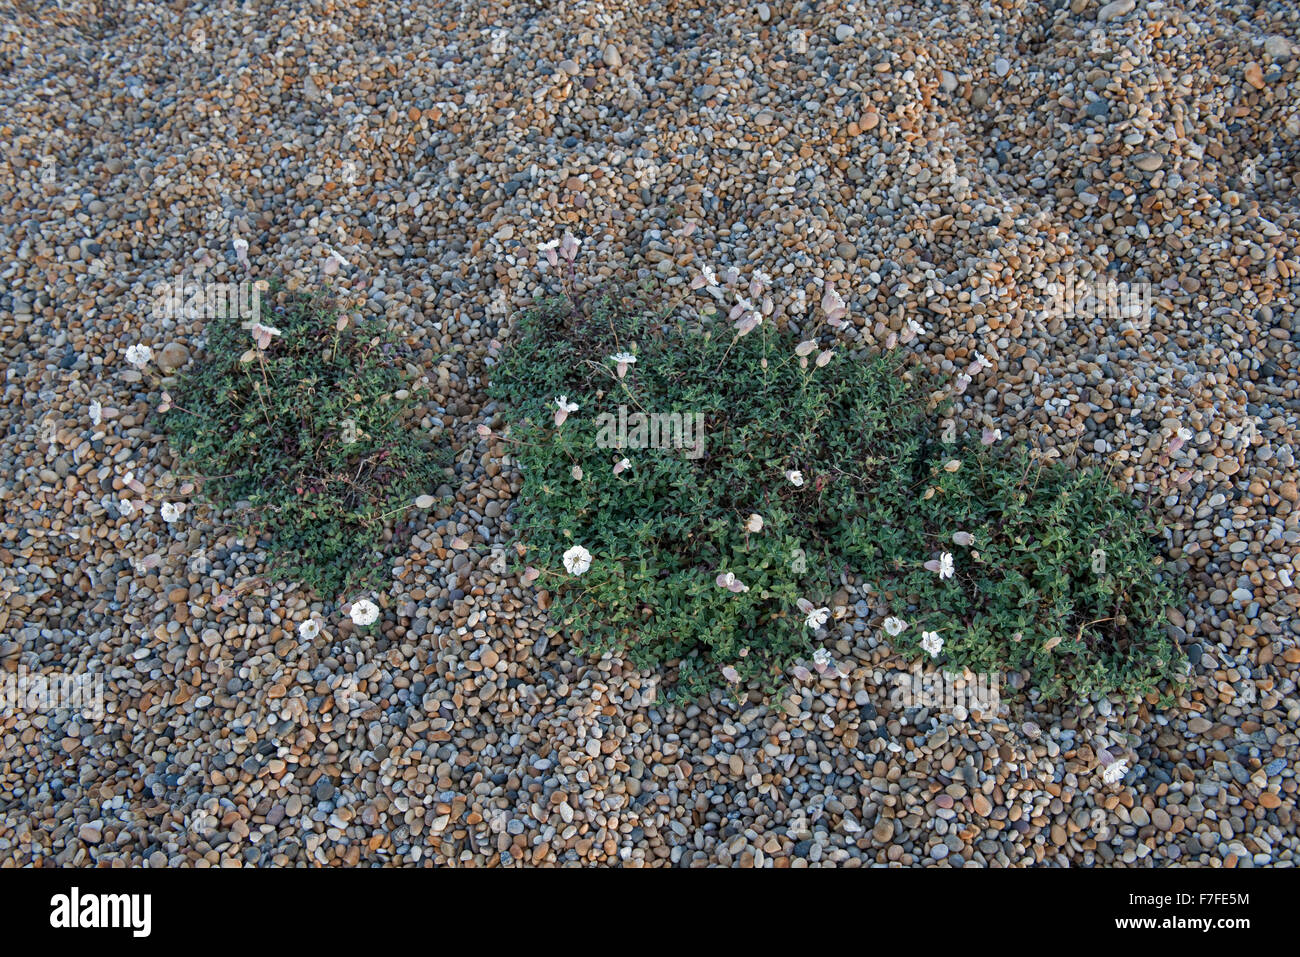 Sea campion, Silene uniflora, flowering in the shingle of Chesil Beach, Dorset, October - Stock Image